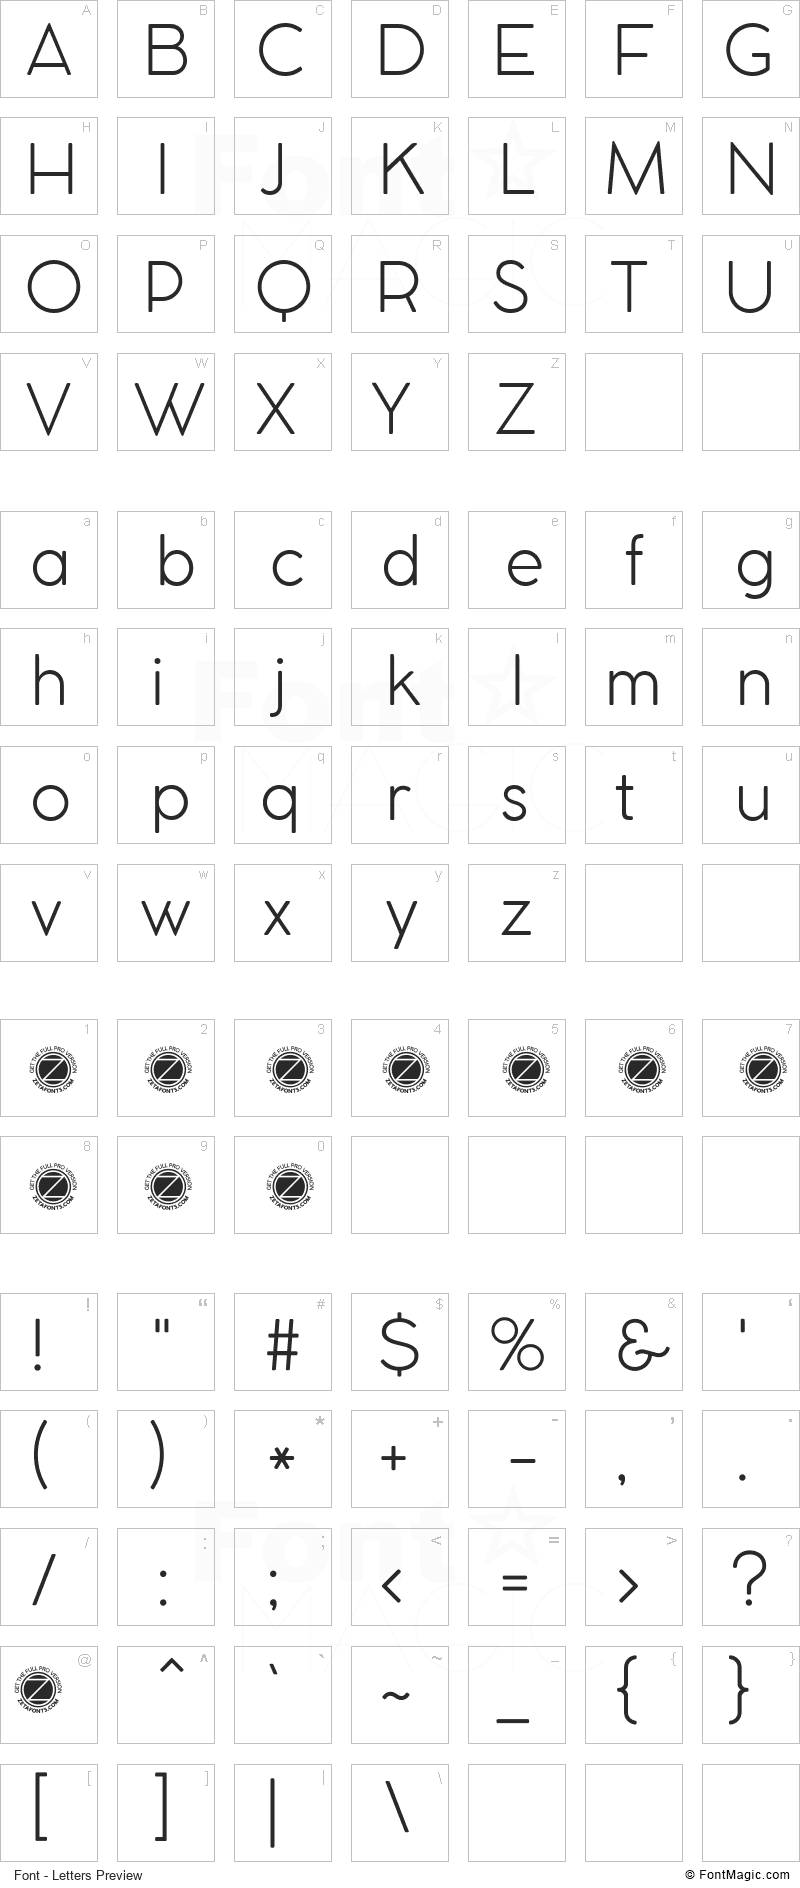 Cocomat Font - All Latters Preview Chart